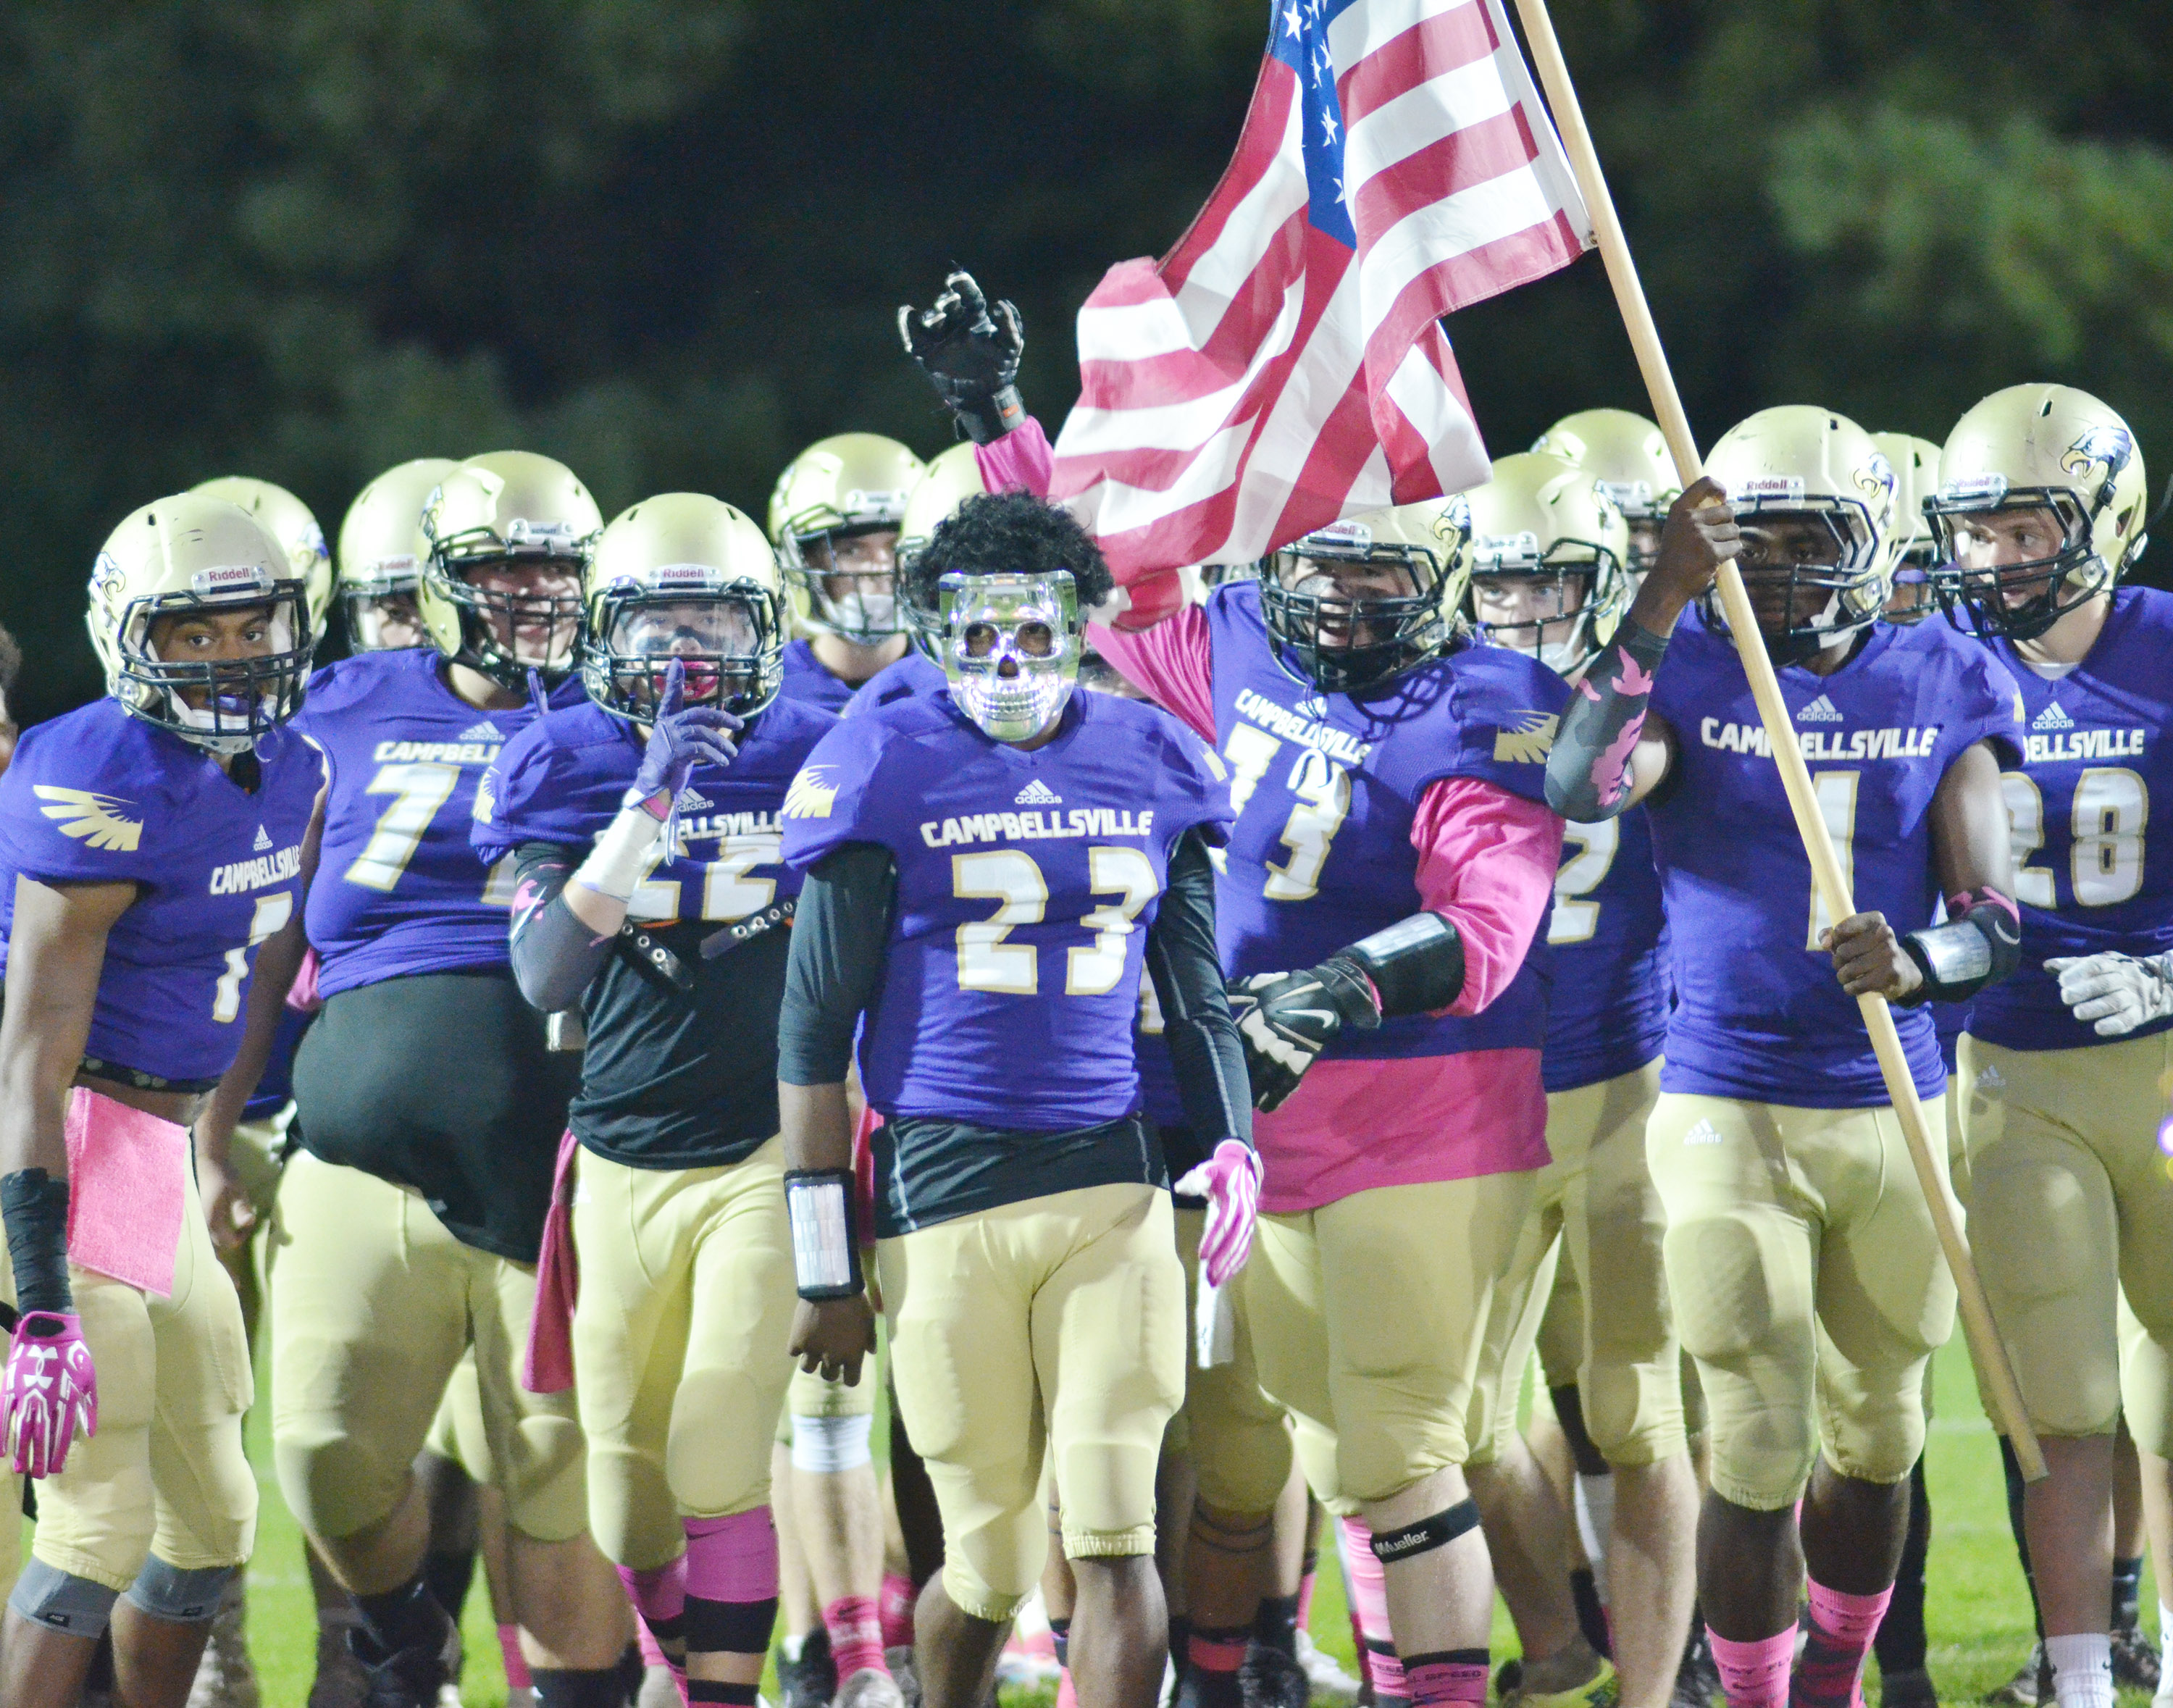 Campbellsville High School football team is set to take on Russellville on Friday, Nov. 10, in the second round of the Kentucky High School Athletic Association playoffs.    Kickoff is at 8 p.m. at Dave Fryrear Field on the CHS campus.    CHS defeated Fulton City High School on Friday, Nov. 3, to advance to the second round.